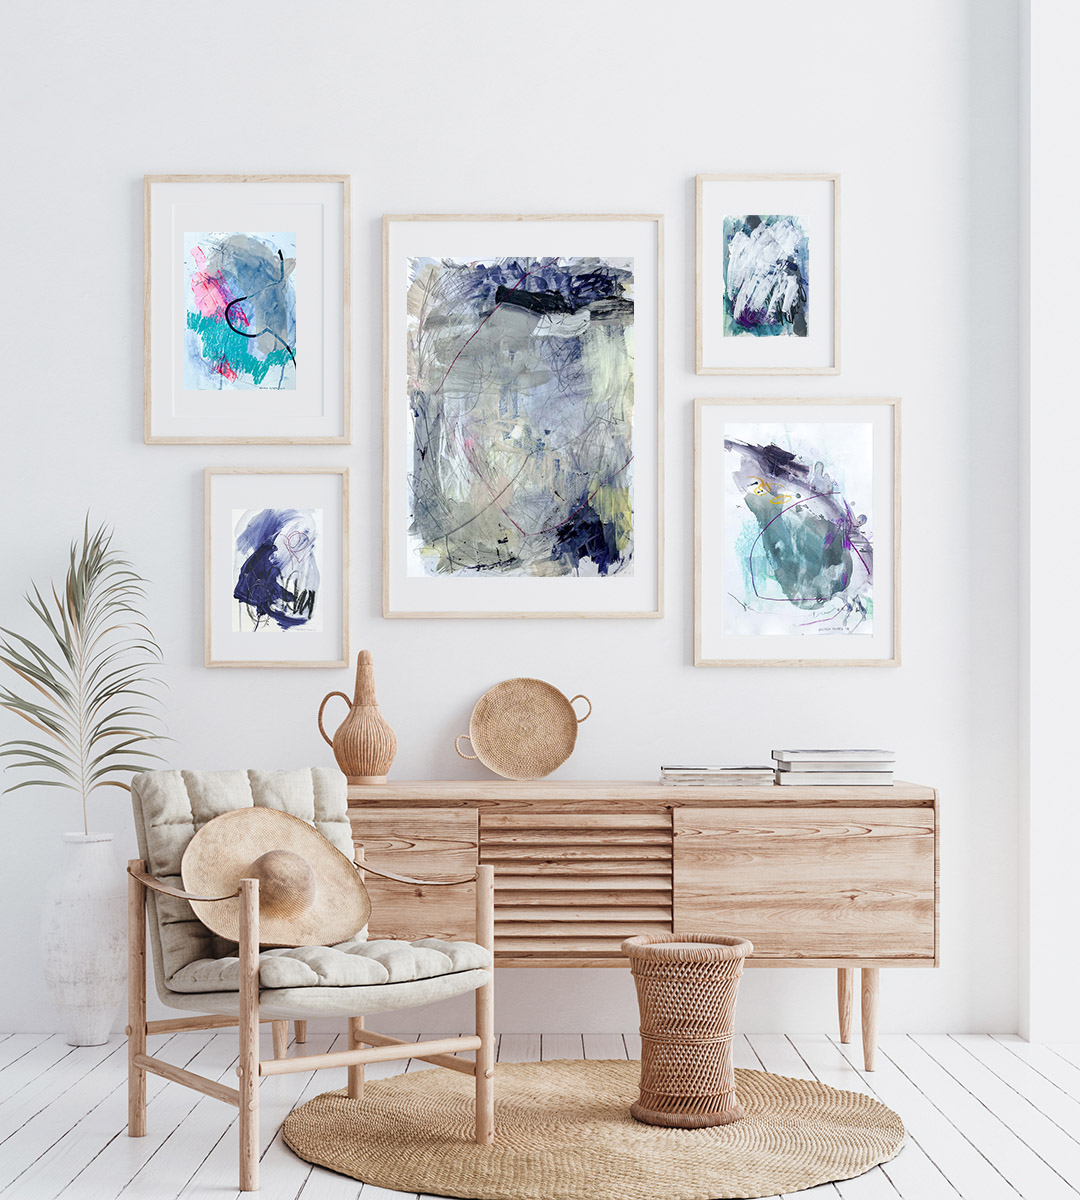 Gallery wall Wood, blue abstract paintings on paper by Wiktoria Florek